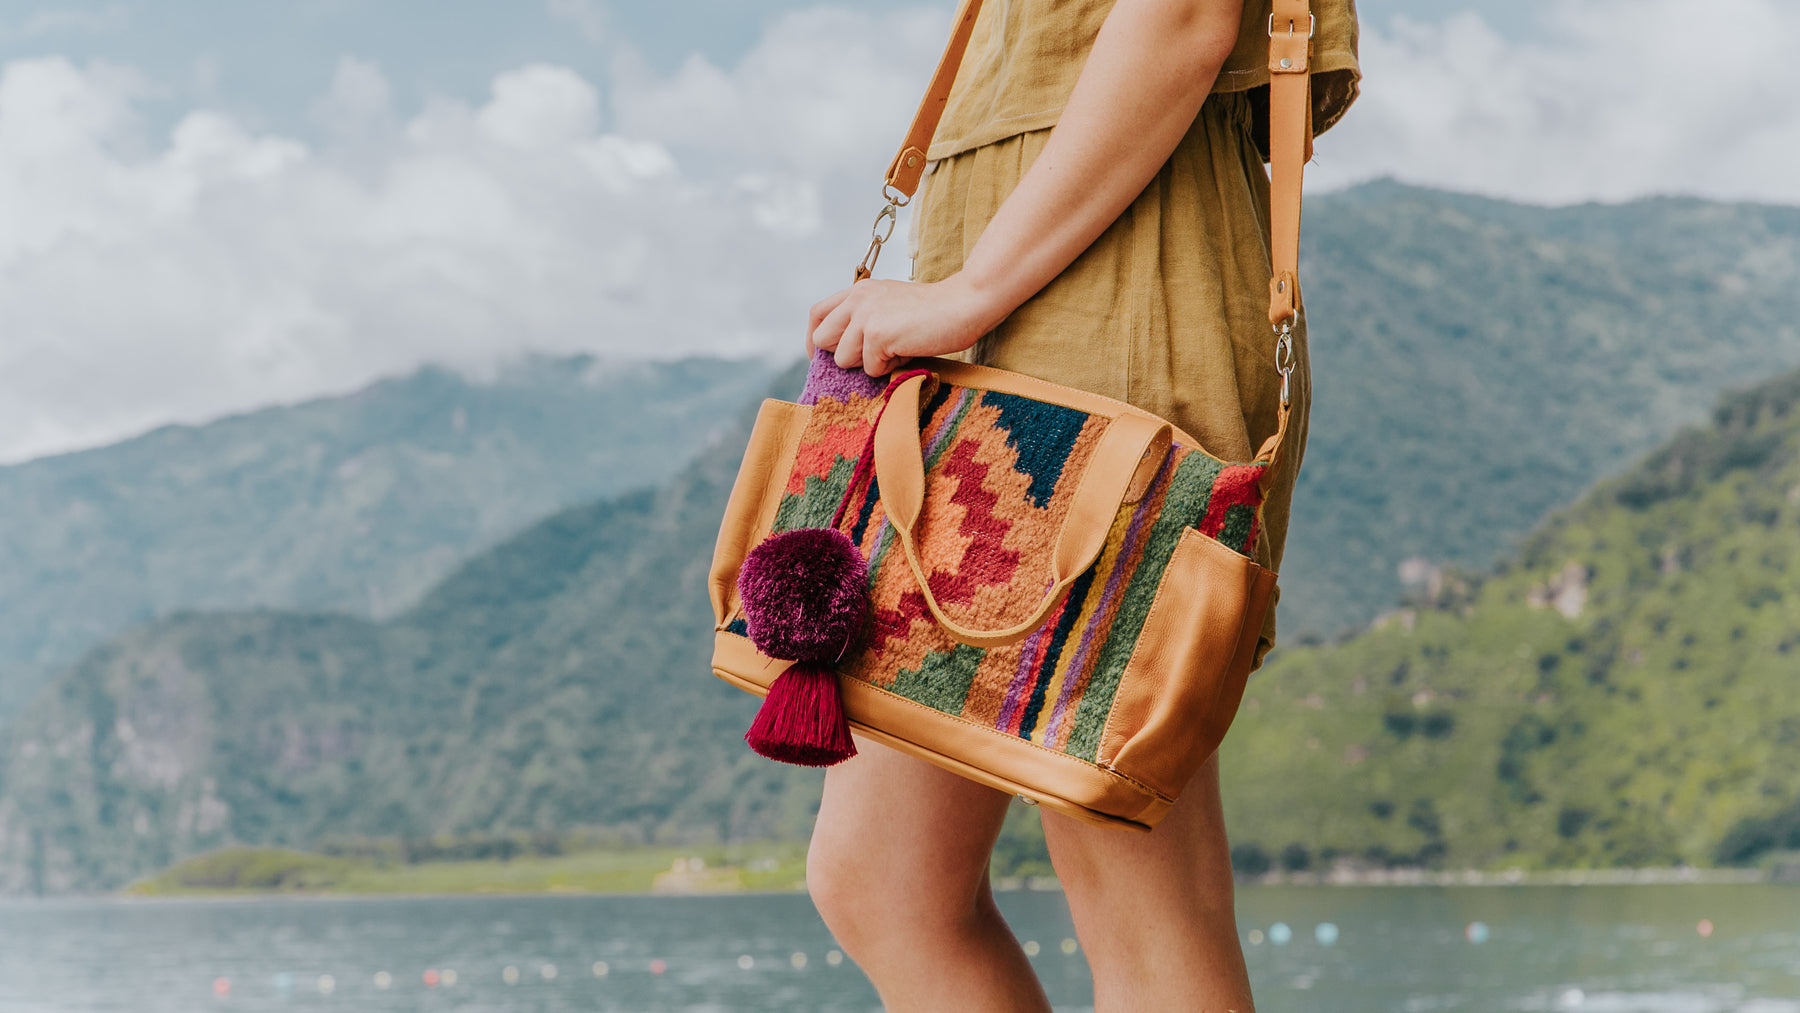 Hiptipico Sustainable Luxury Leather Convertible Bags Handmade in Guatemala